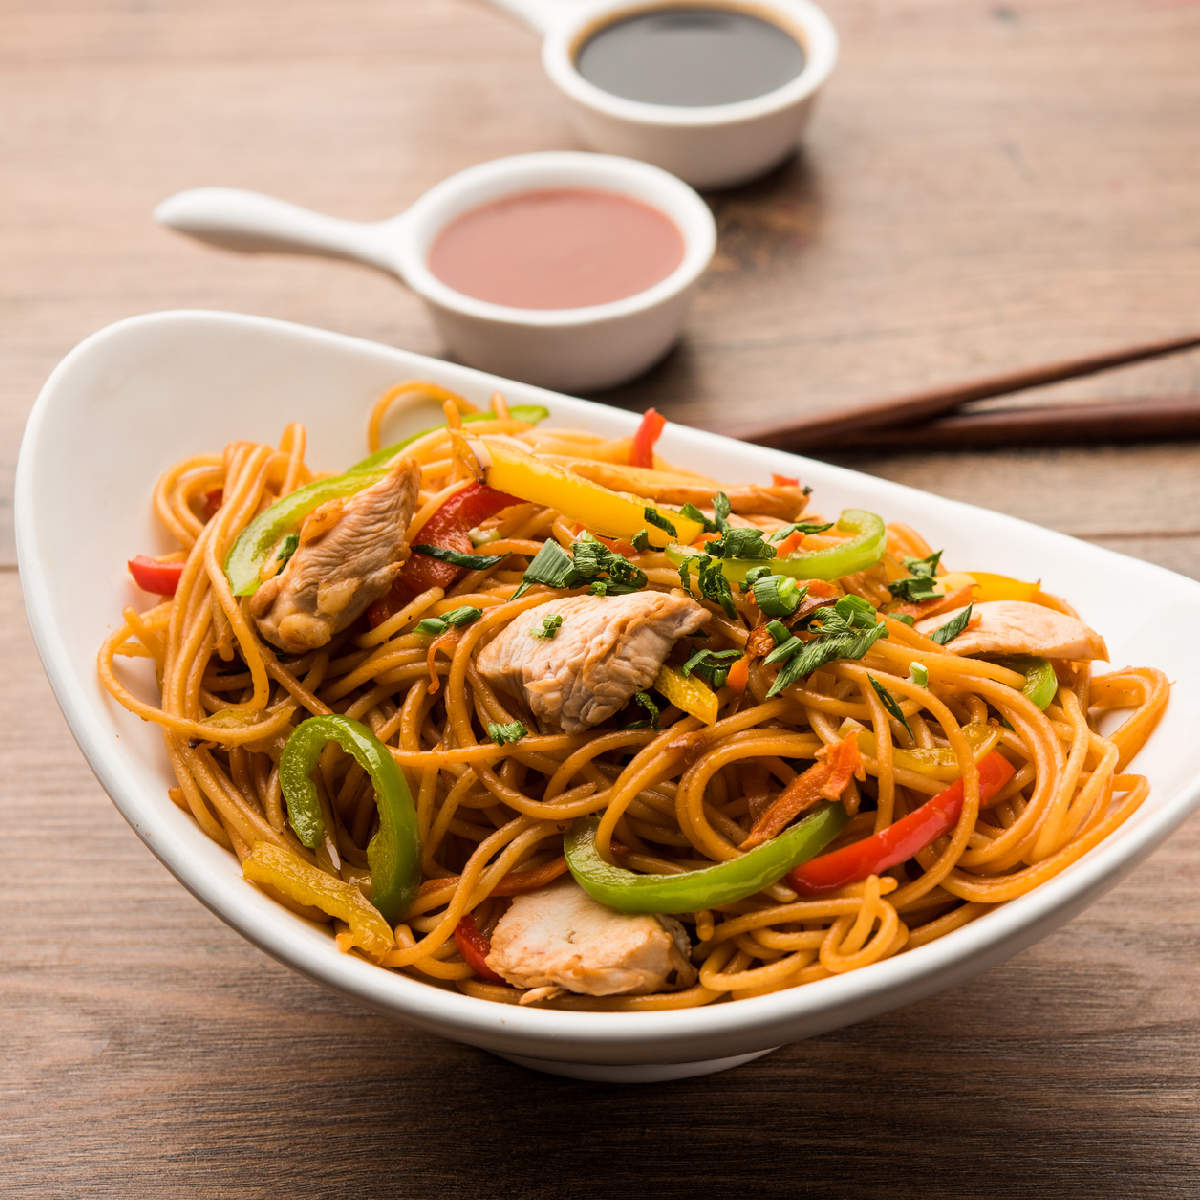 Chicken Hakka Noodles Recipe How To Make Chicken Hakka Noodles Recipe Homemade Chicken Hakka Noodles Recipe